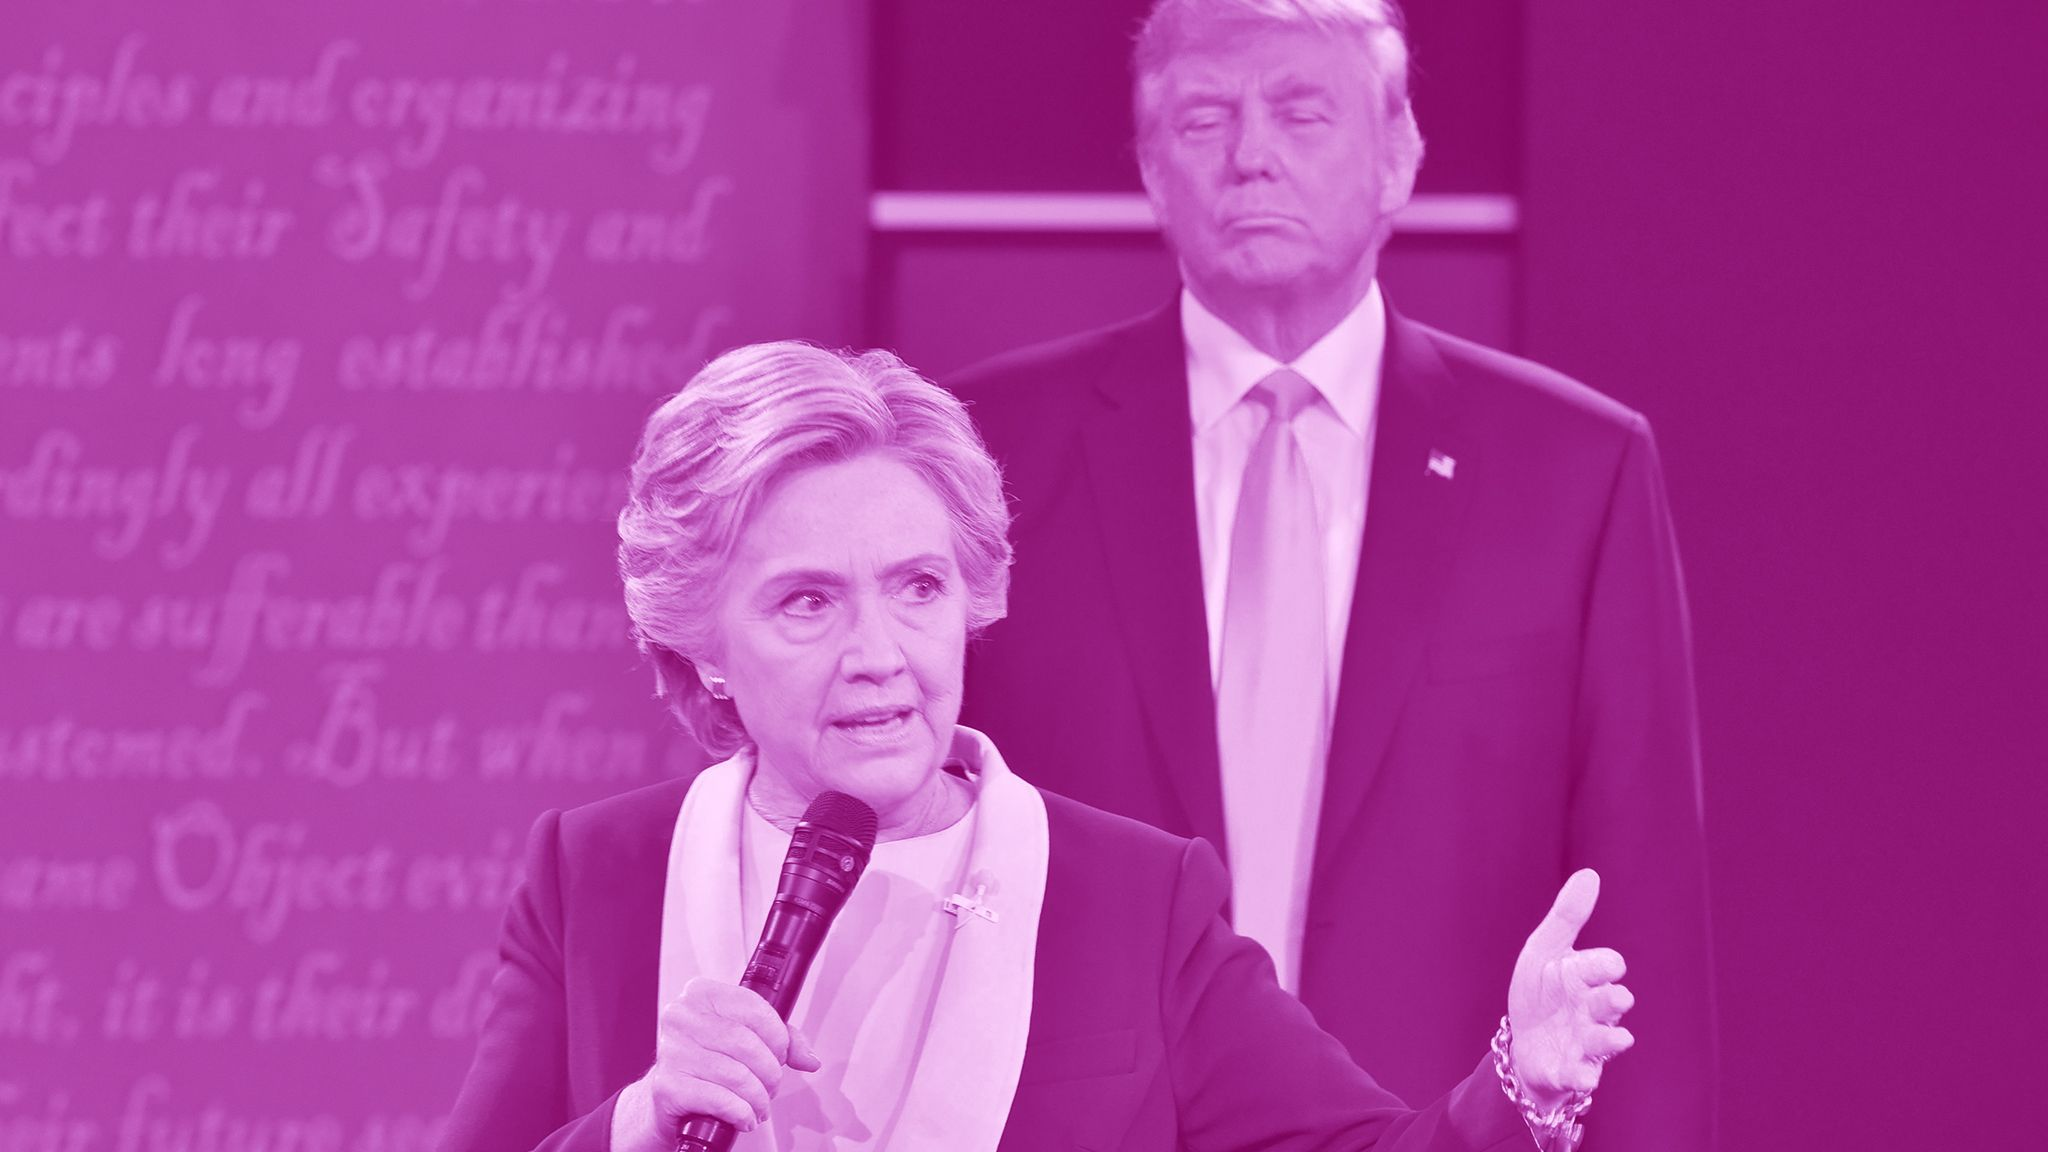 Cosmopolitan.com Readers Say This Election Is Hurting Their Relationships